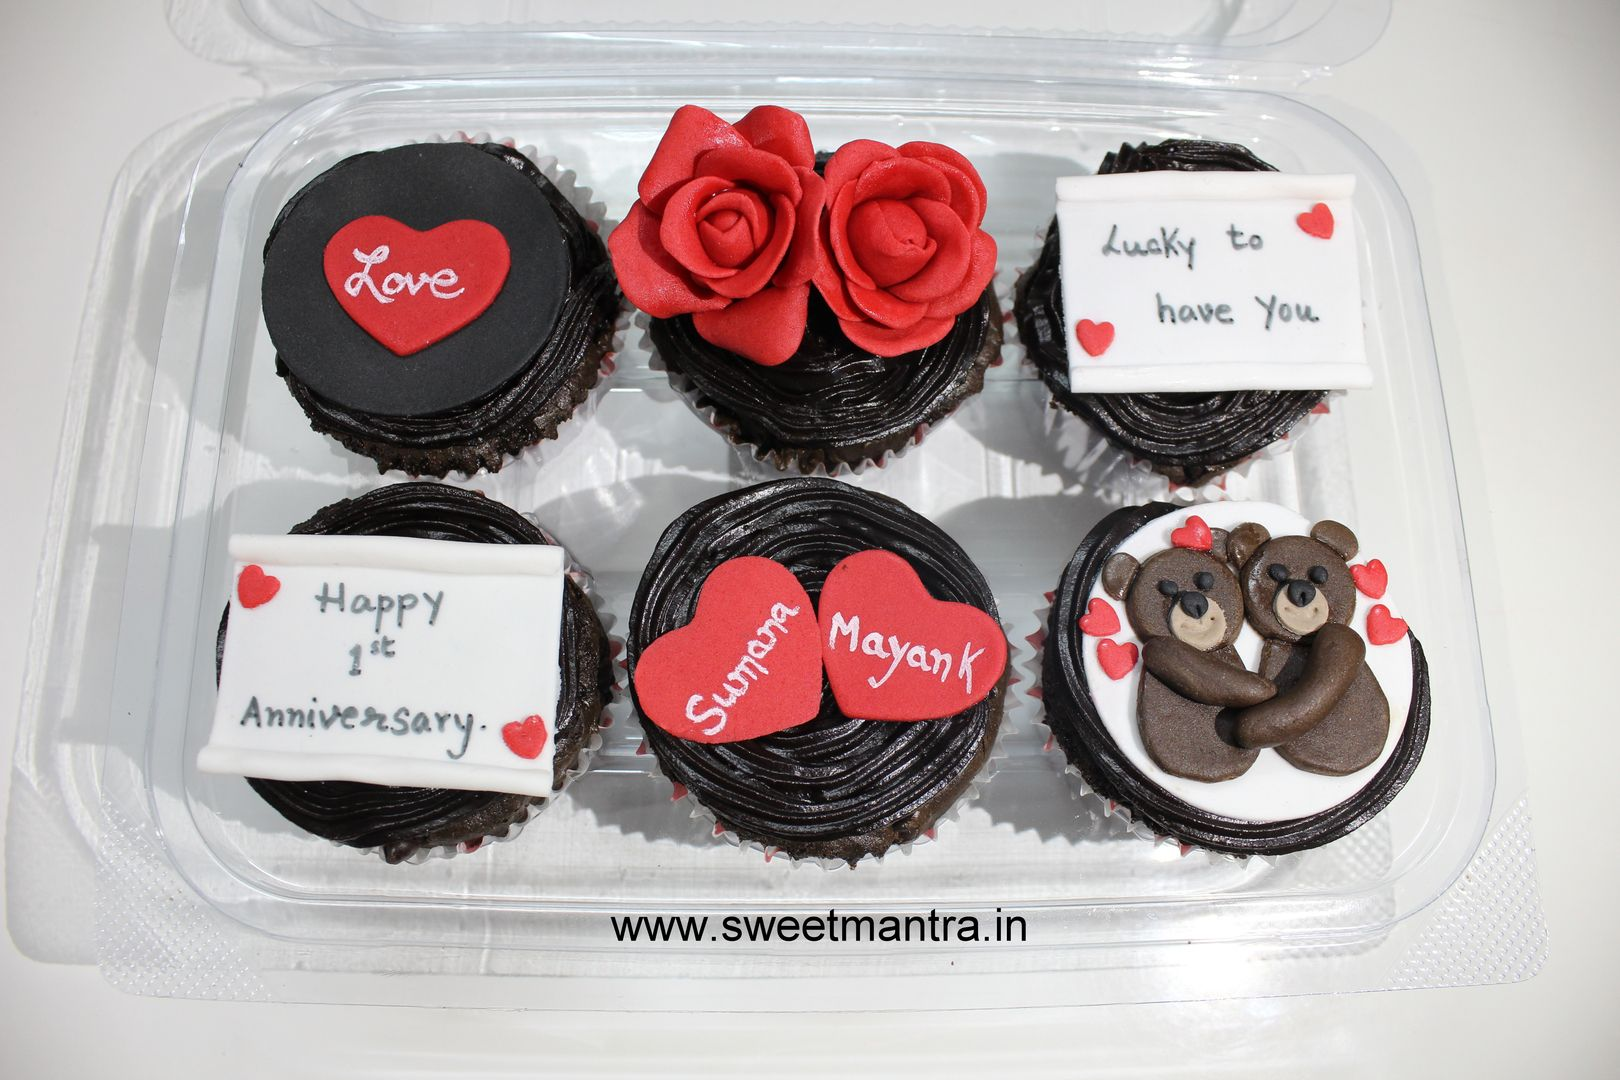 Homemade eggless 3d custom wedding anniversary theme cupcakes at